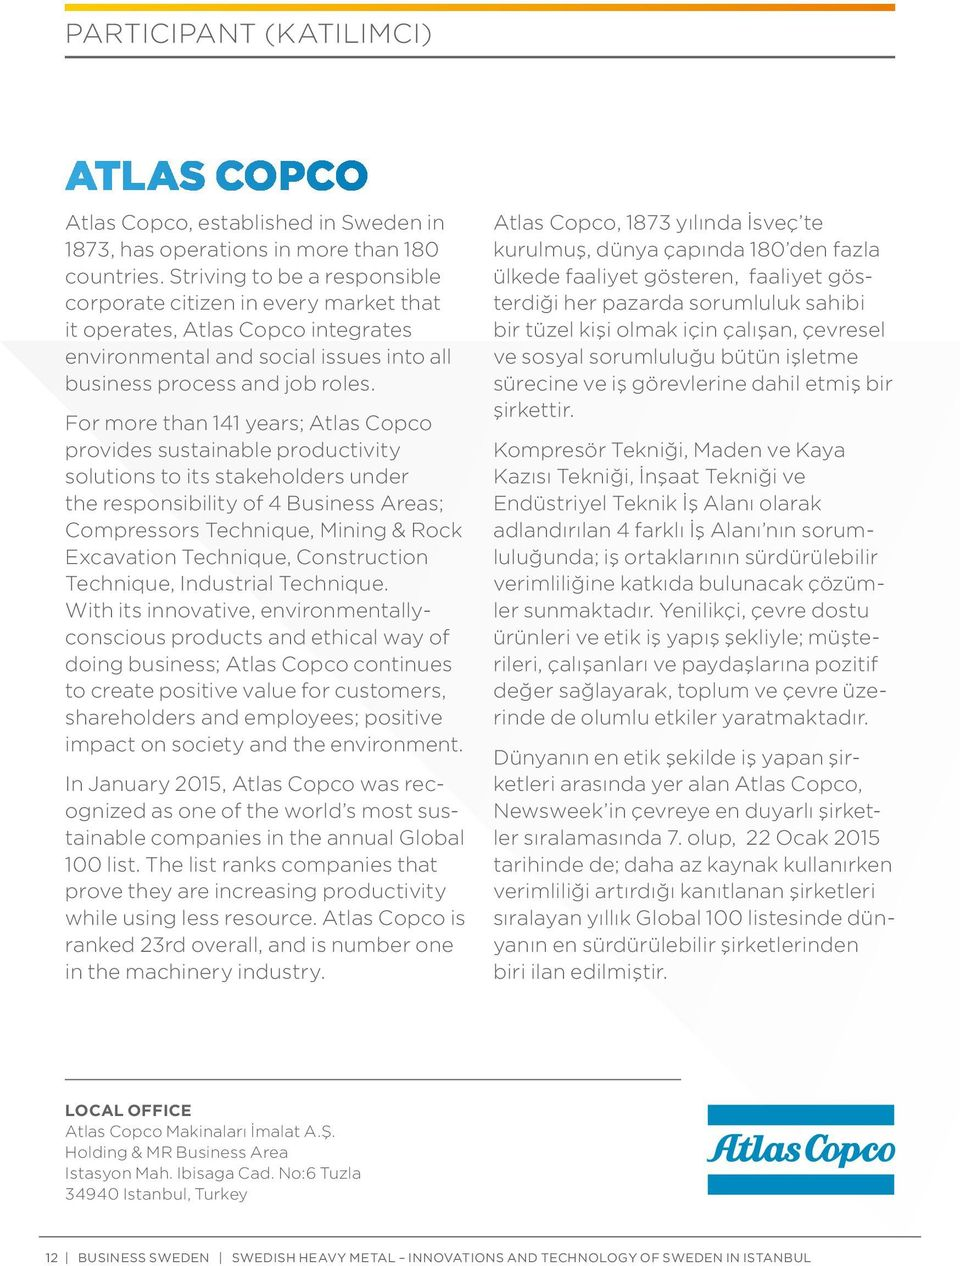 For more than 141 years; Atlas Copco provides sustainable productivity solutions to its stakeholders under the responsibility of 4 Business Areas; Compressors Technique, Mining & Rock Excavation